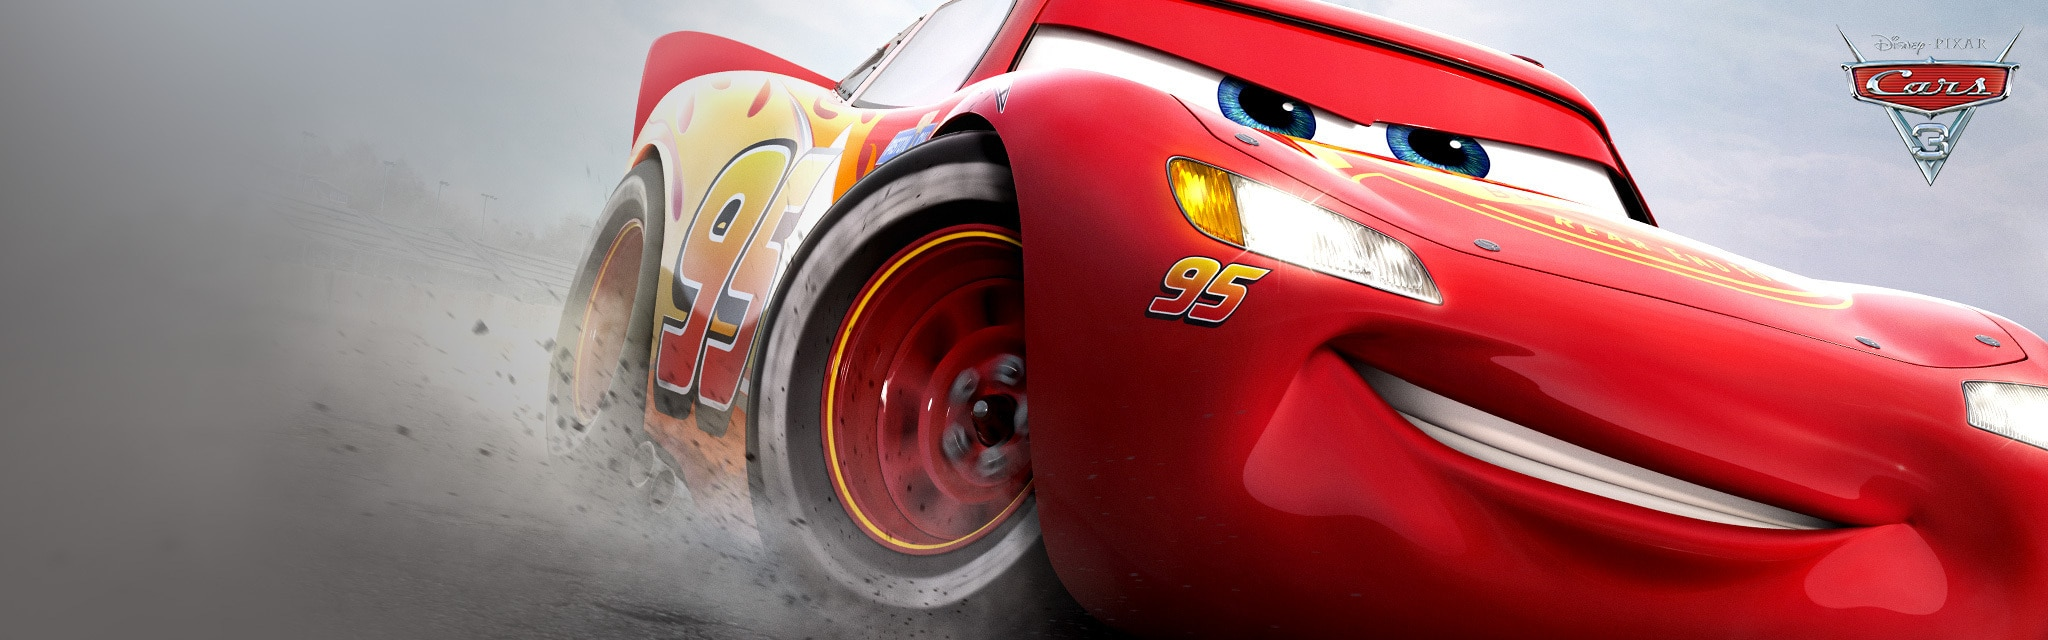 Cars 3 - Rivalry Trailer - Hero